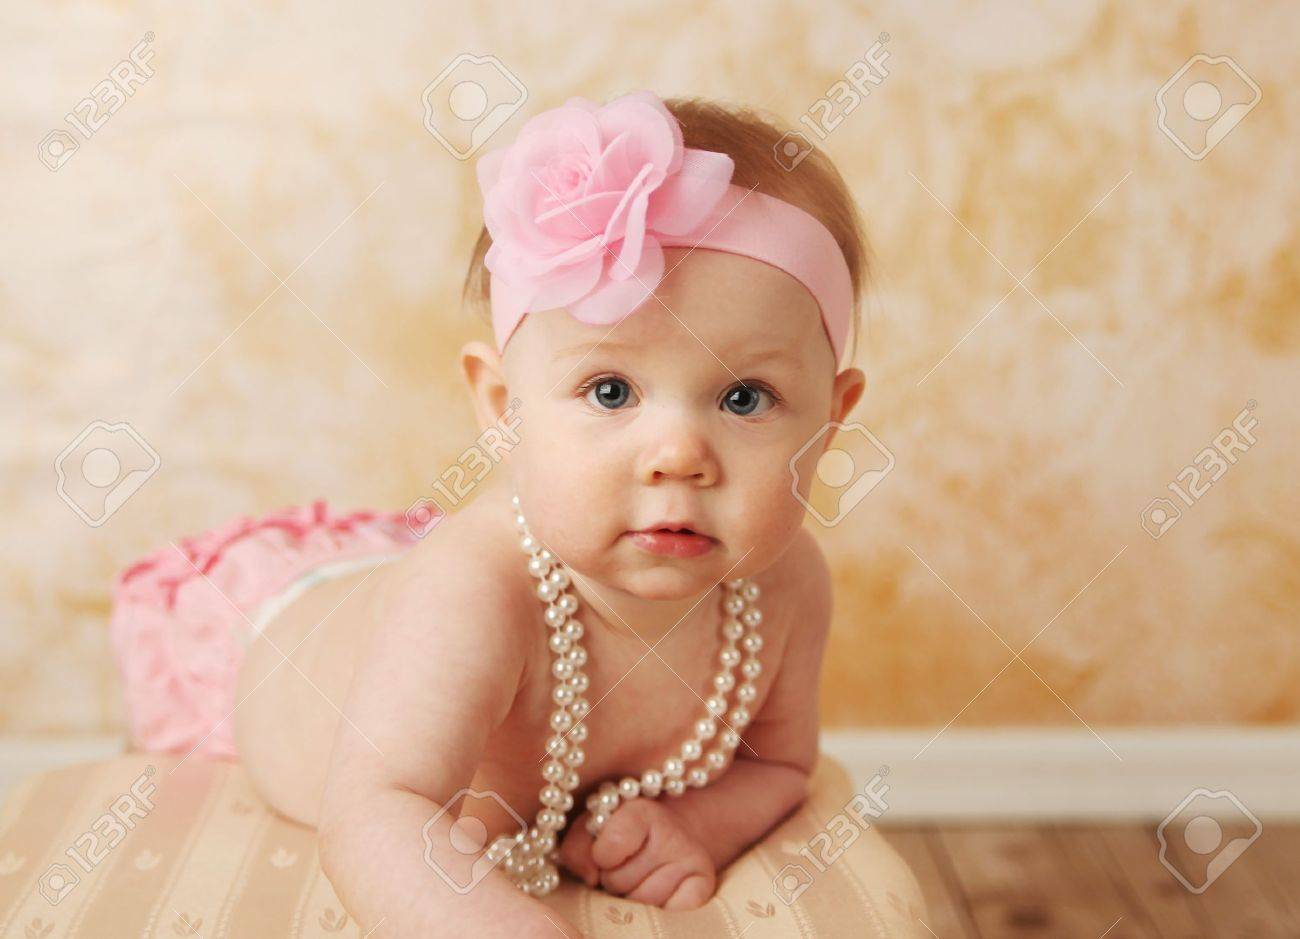 adorable young baby girl wearing a vintage pearl necklace and